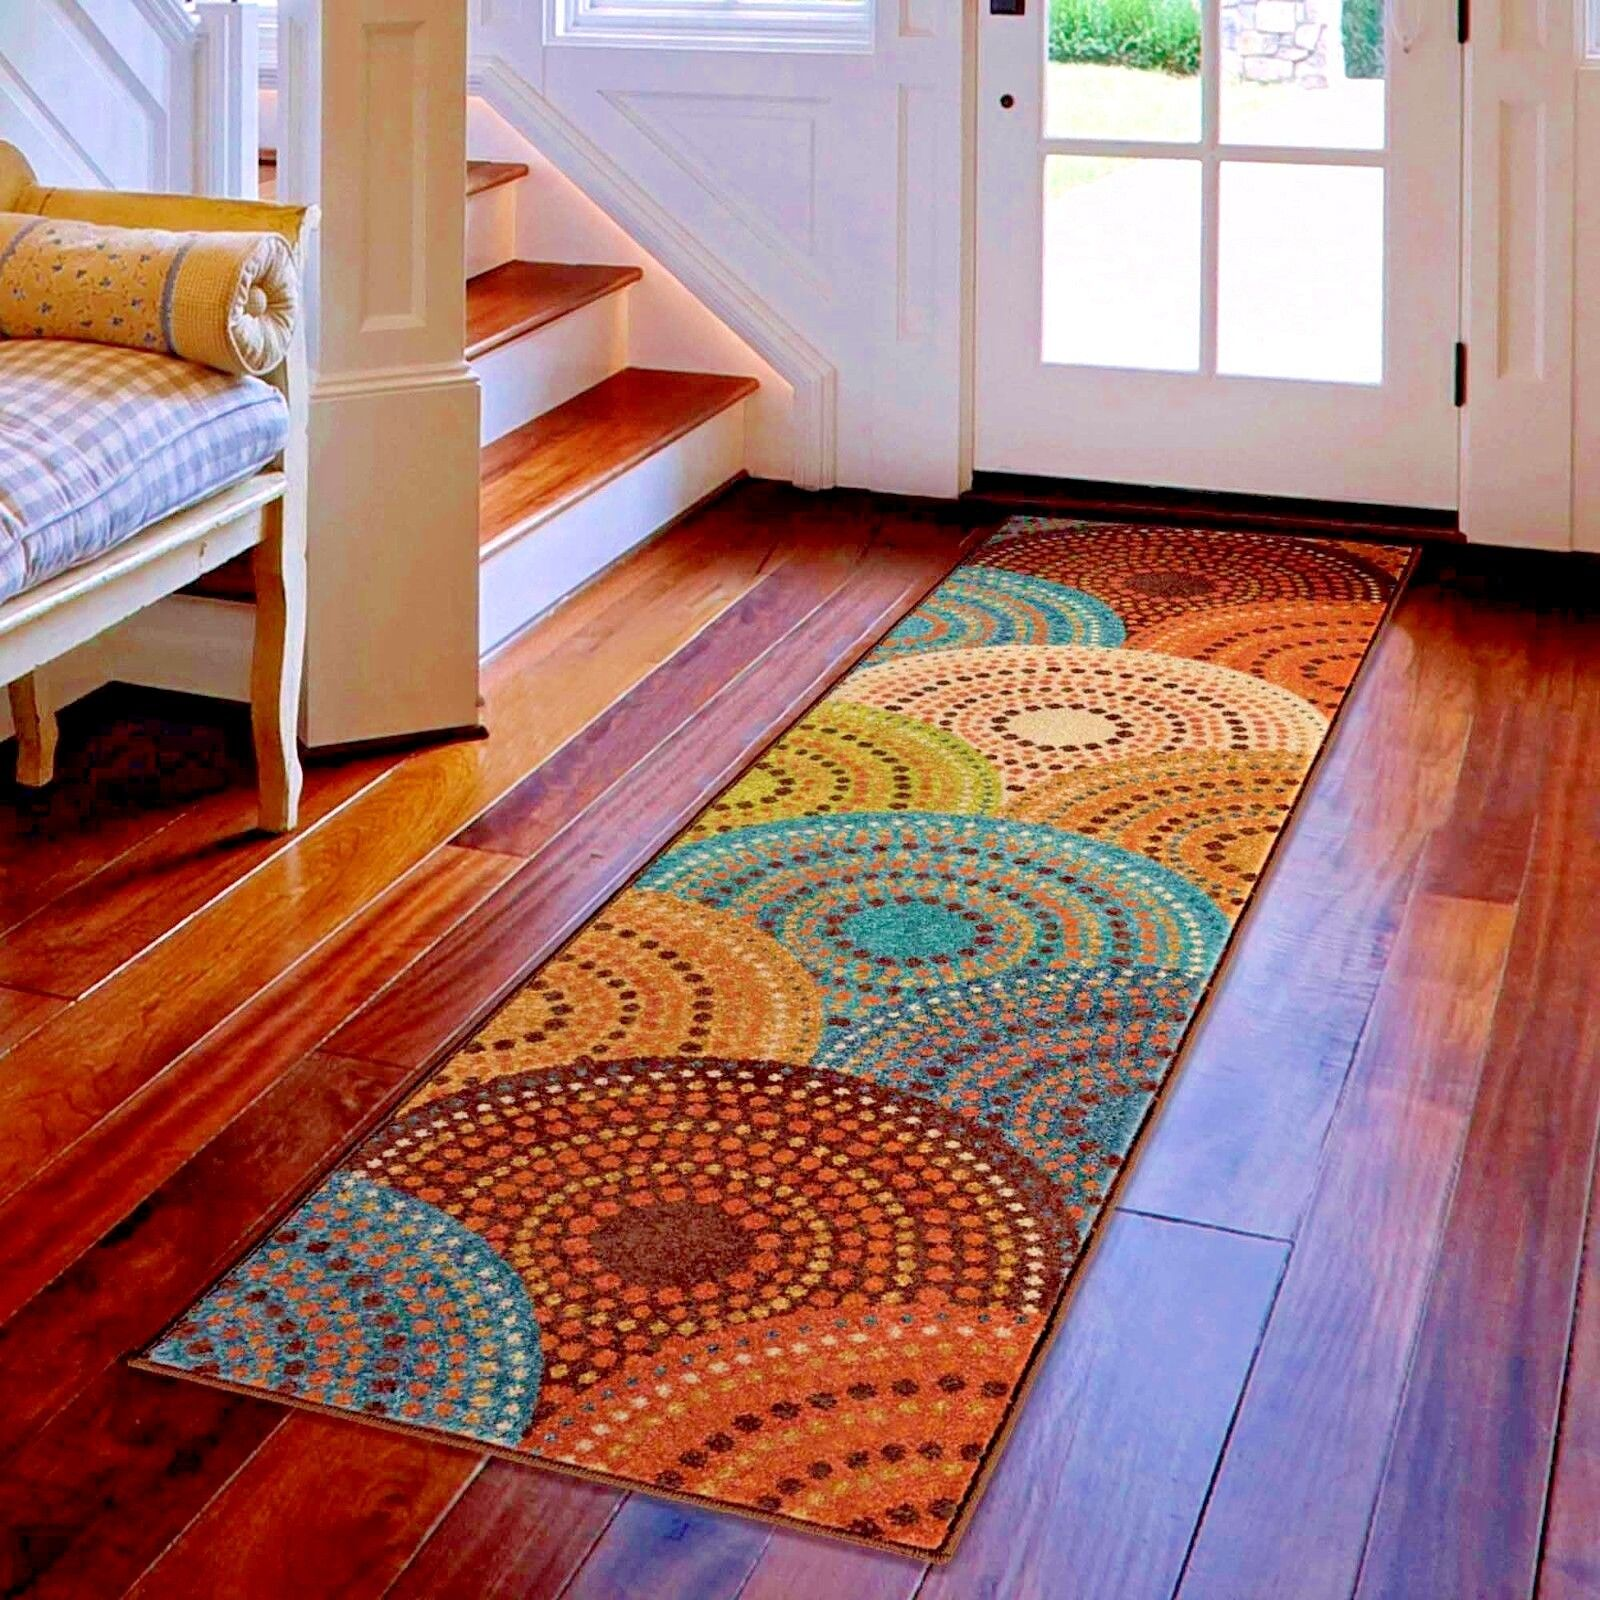 RUNNER RUGS CARPET RUNNERS AREA RUG RUNNERS HALLWAY COOL COLORFUL KITCHEN RUGS   eBay